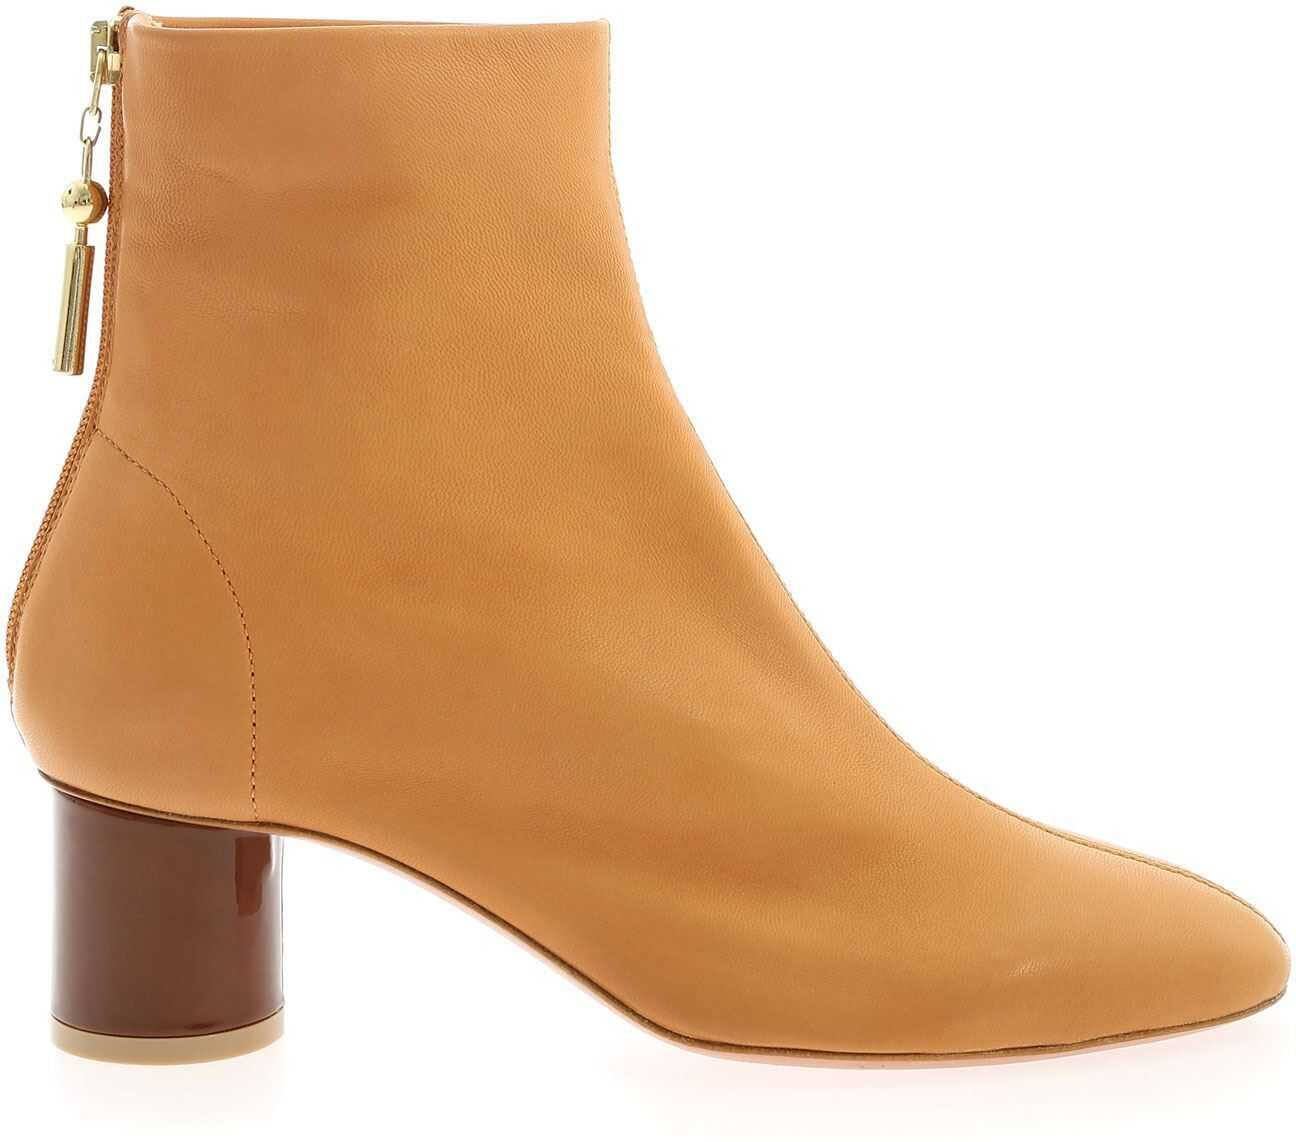 Anna Baiguera Annalia Ankle Boots In Light Brown Camel